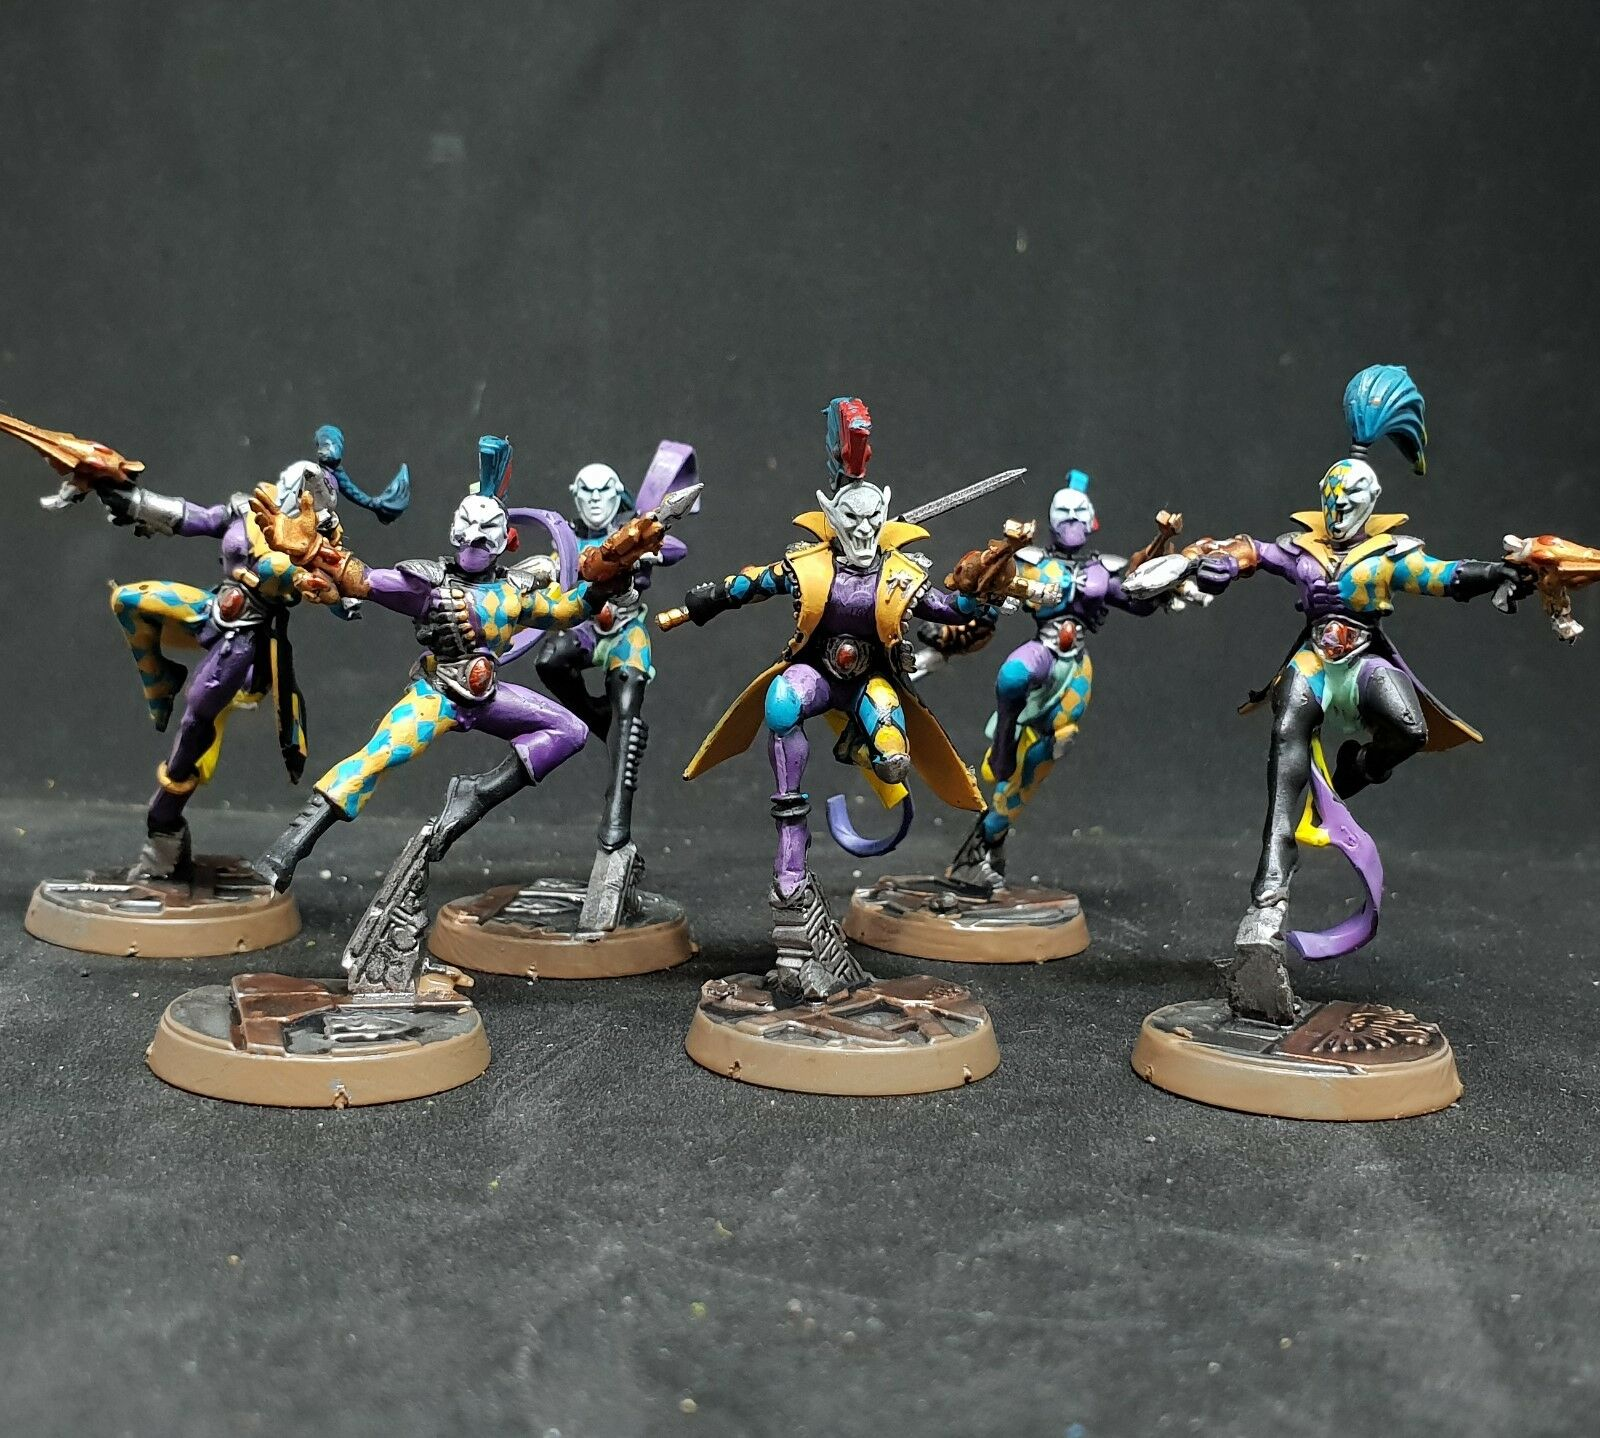 Warhammer 40k Eldar Harlequin Troupe Pro painted made to order